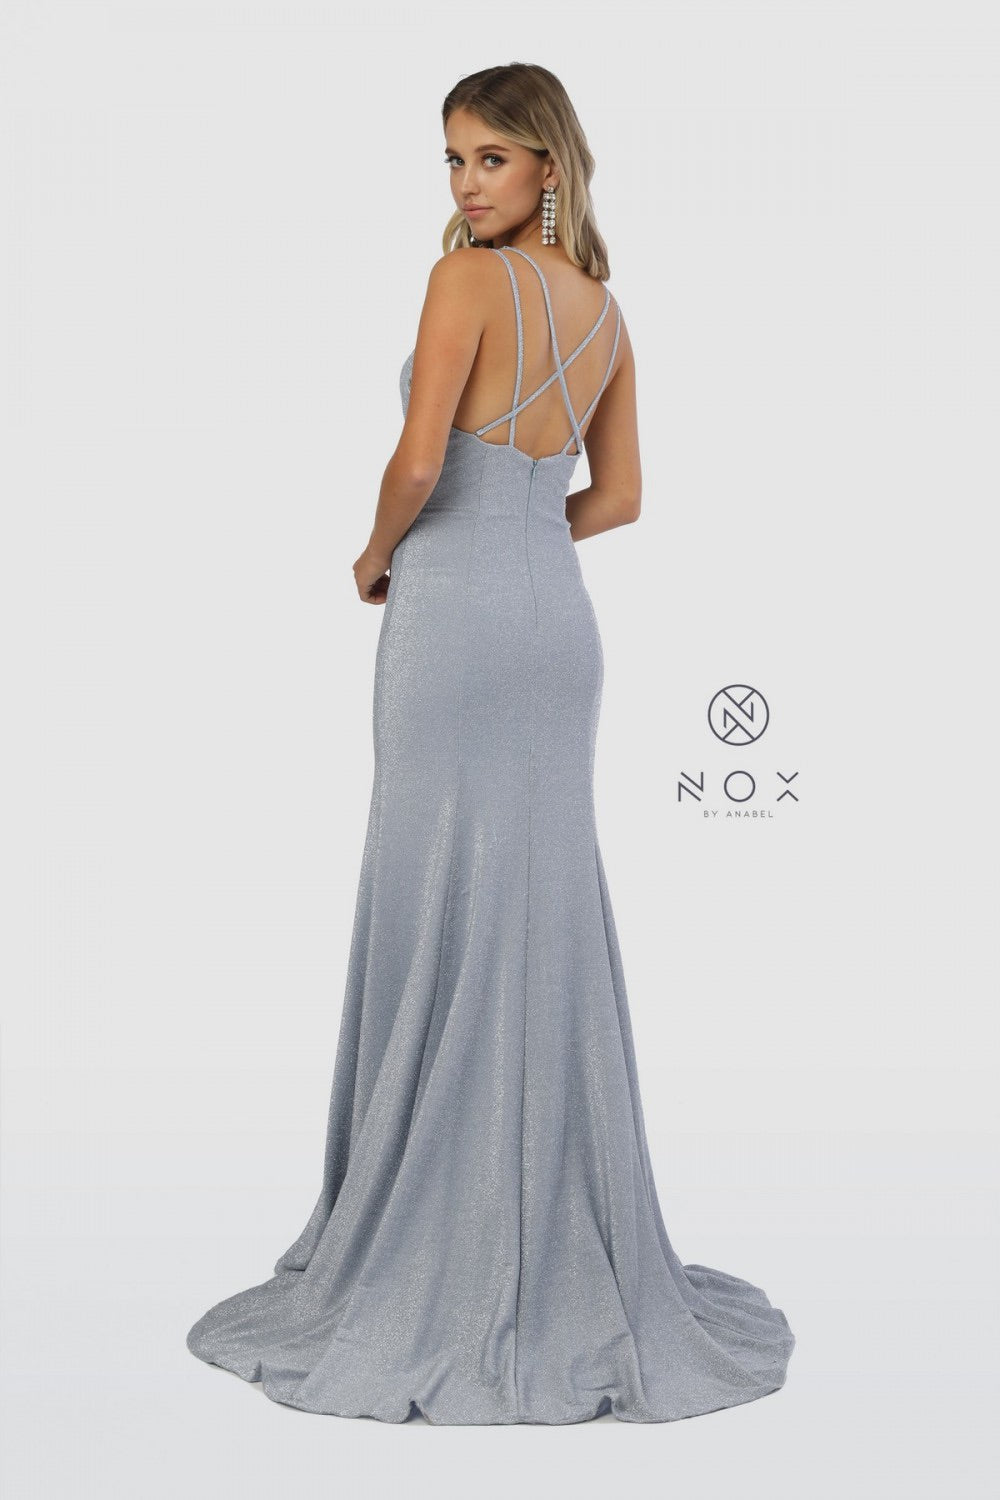 Nox Anabel C234 Fitted V-Neck Evening Dress